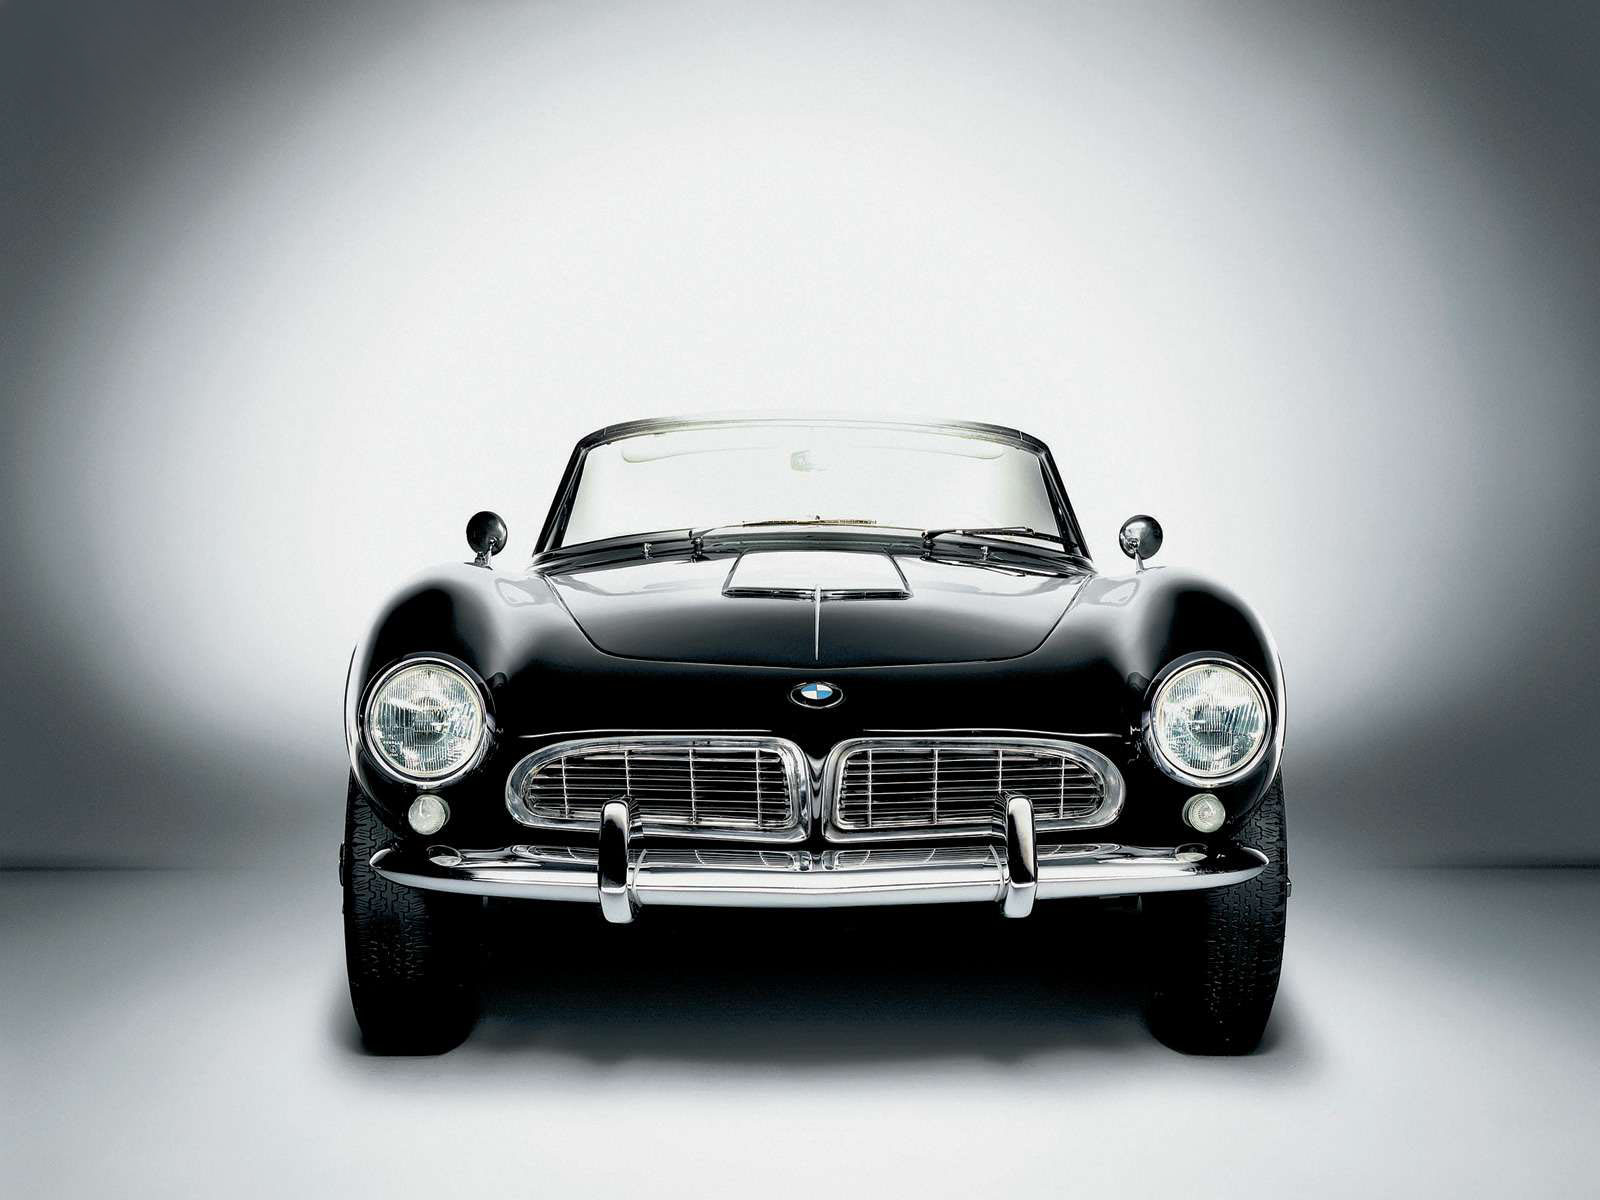 vintage classic bmw cars for sale jpg 853x1280